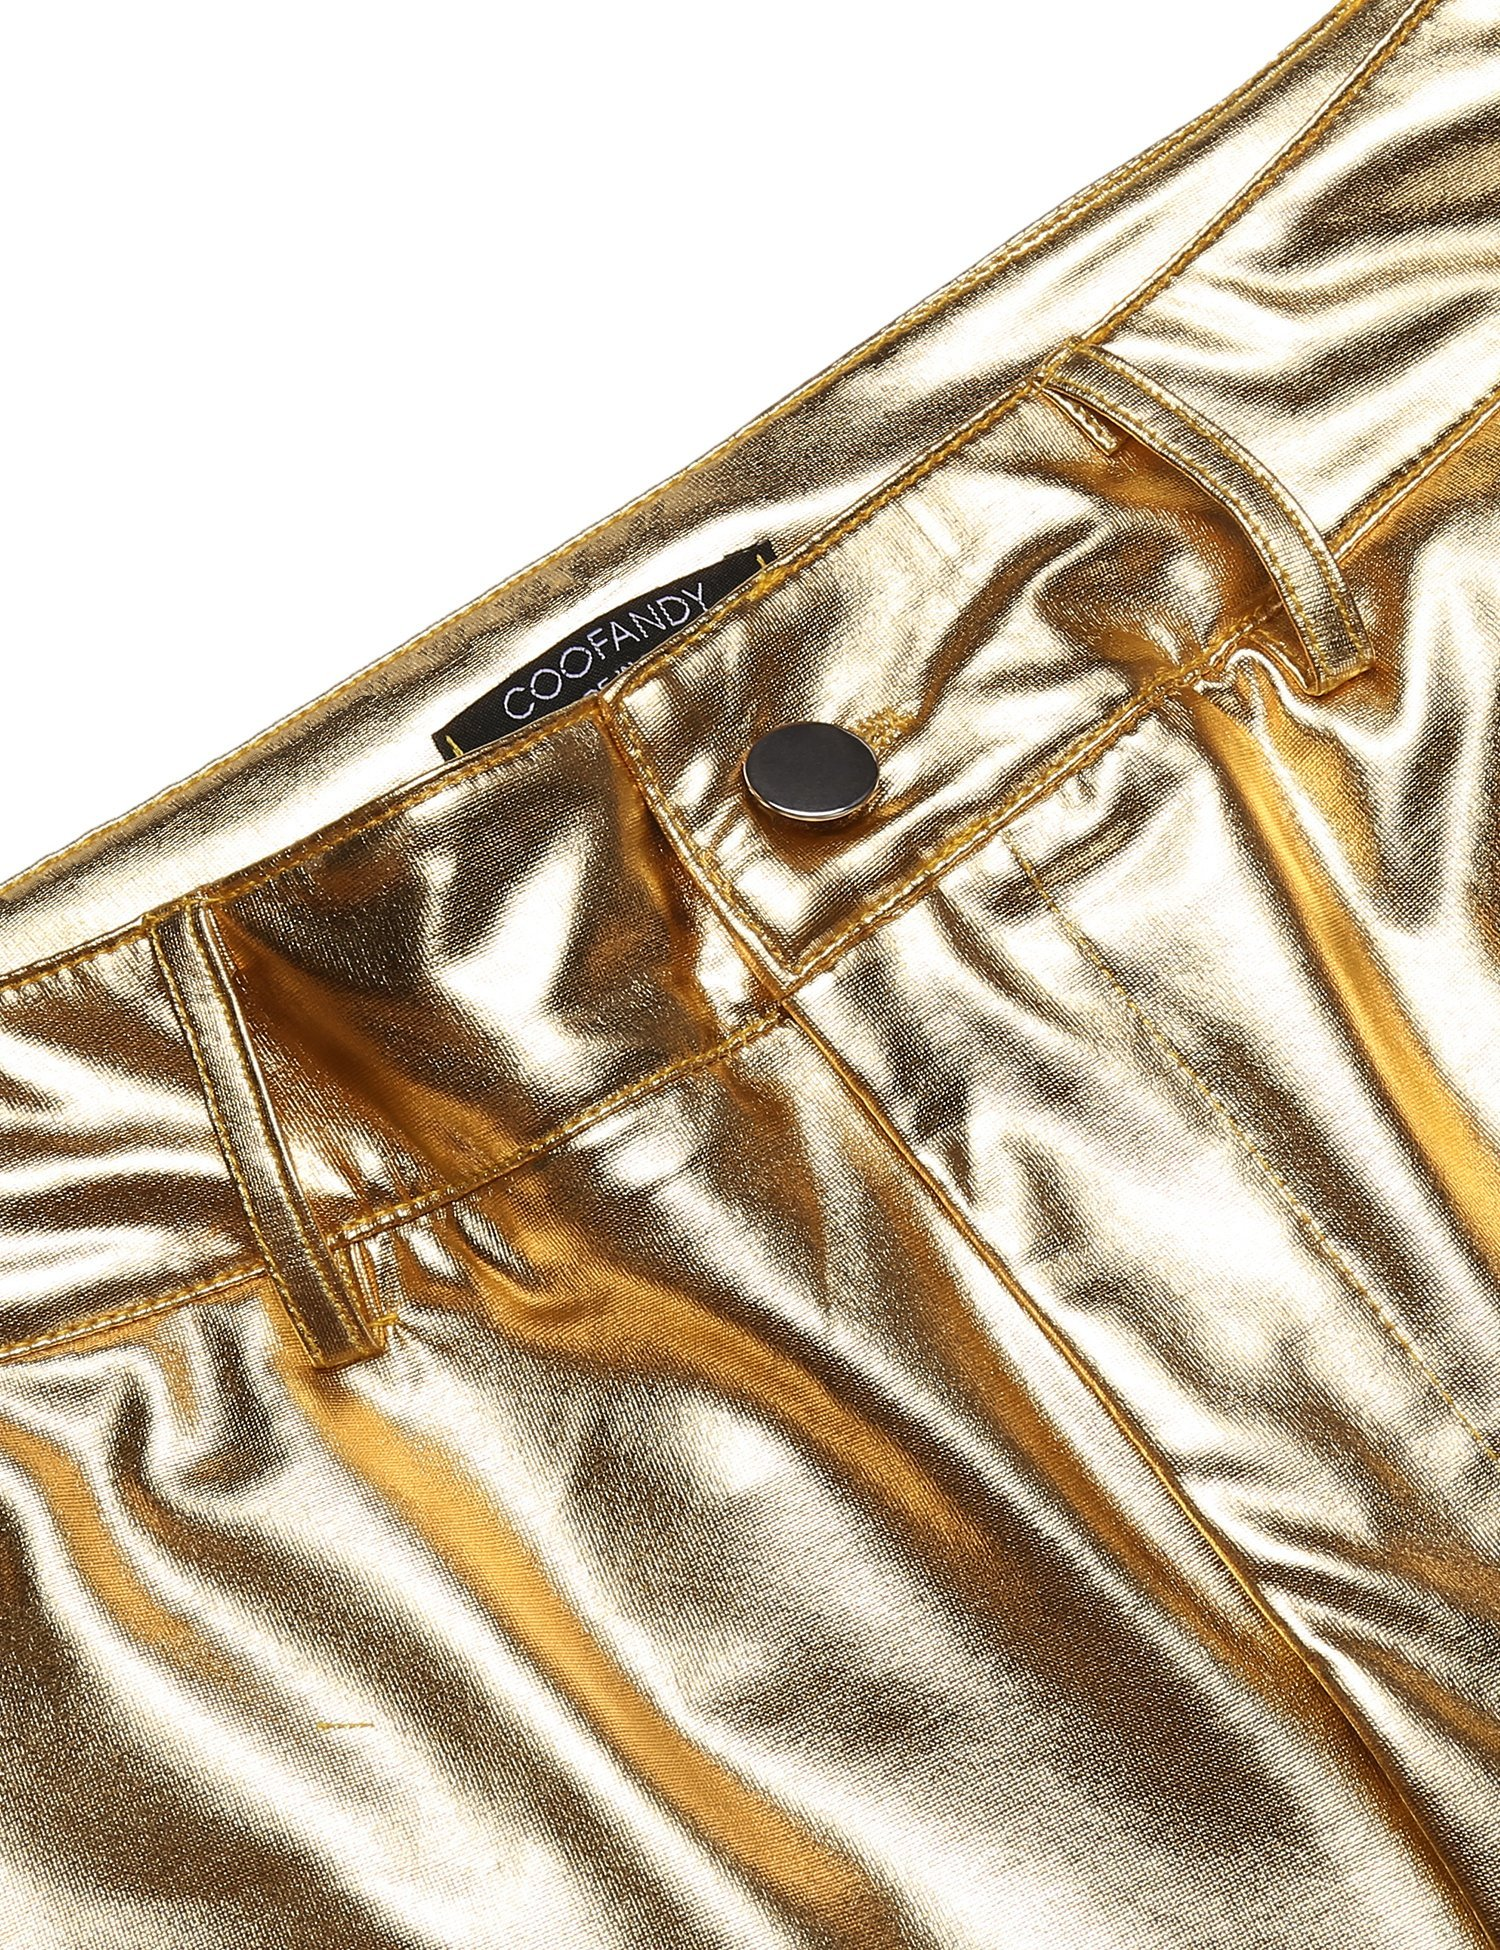 COOFANDY Mens Metallic Shiny Jeans Party Dance Disco Nightclub Pants Straight Leg Trousers